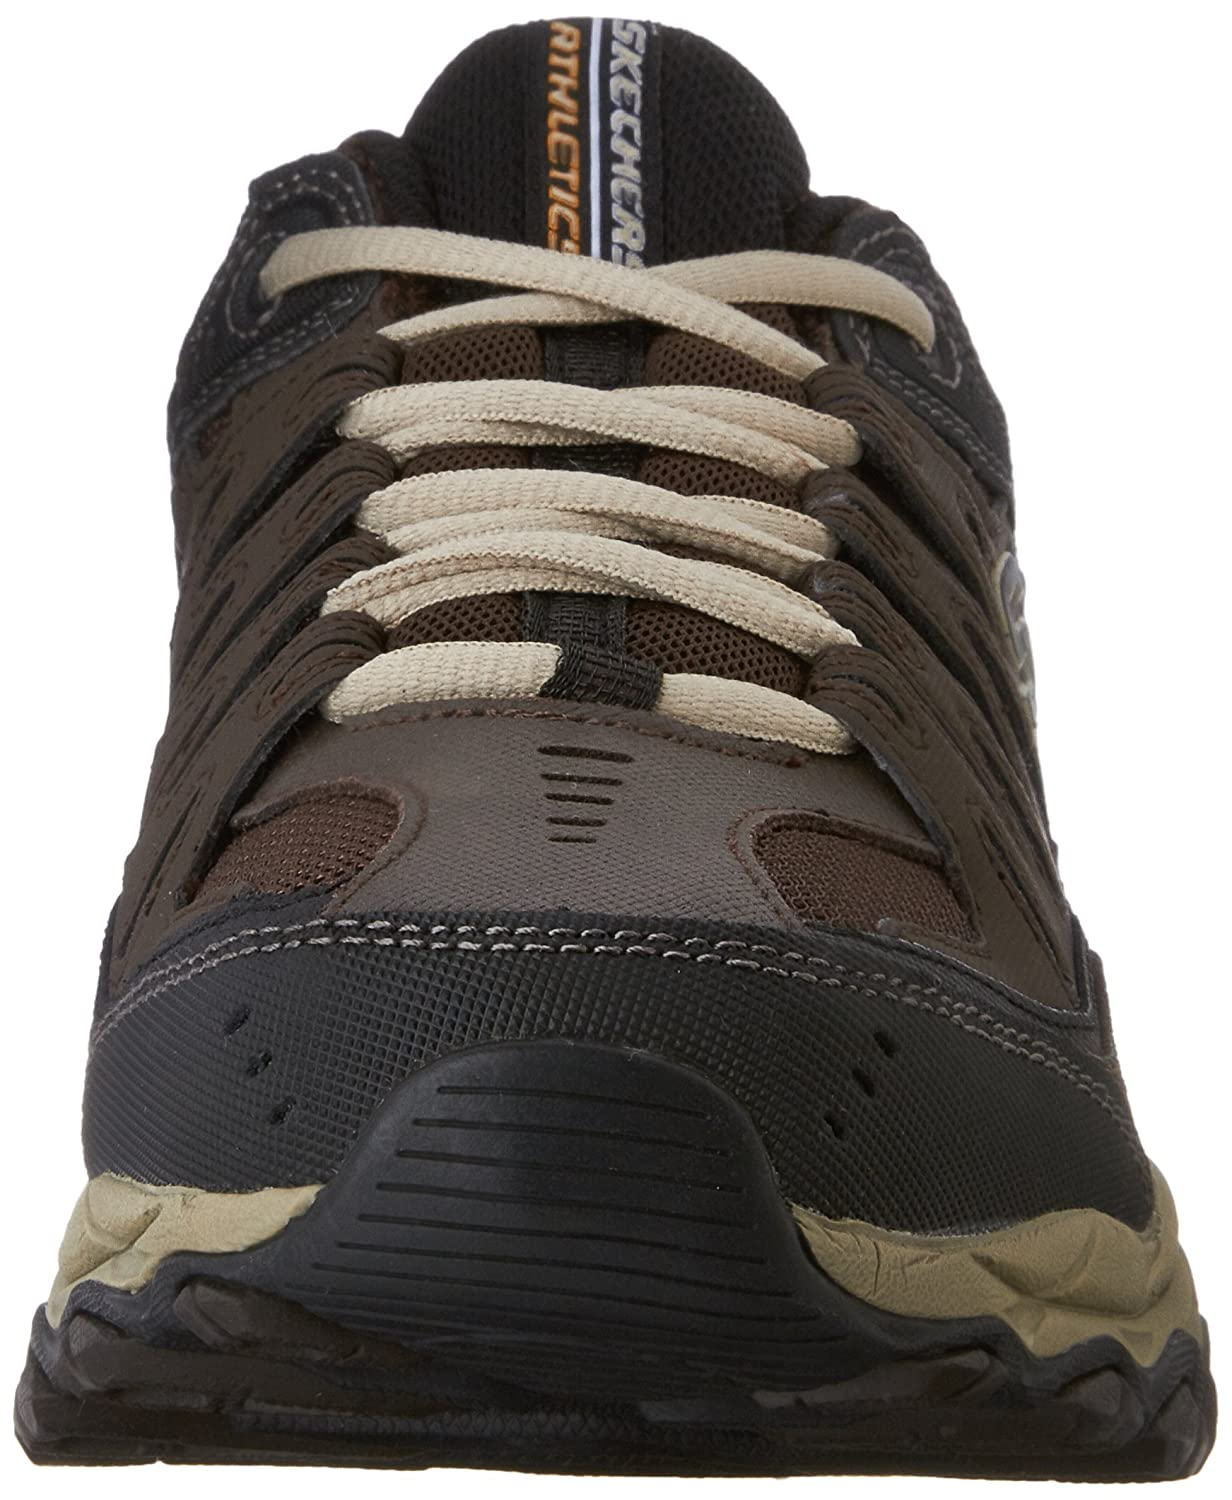 Skechers-Afterburn-Memory-Foam-M-Fit-Men-039-s-Sport-After-Burn-Sneakers-Shoes thumbnail 27